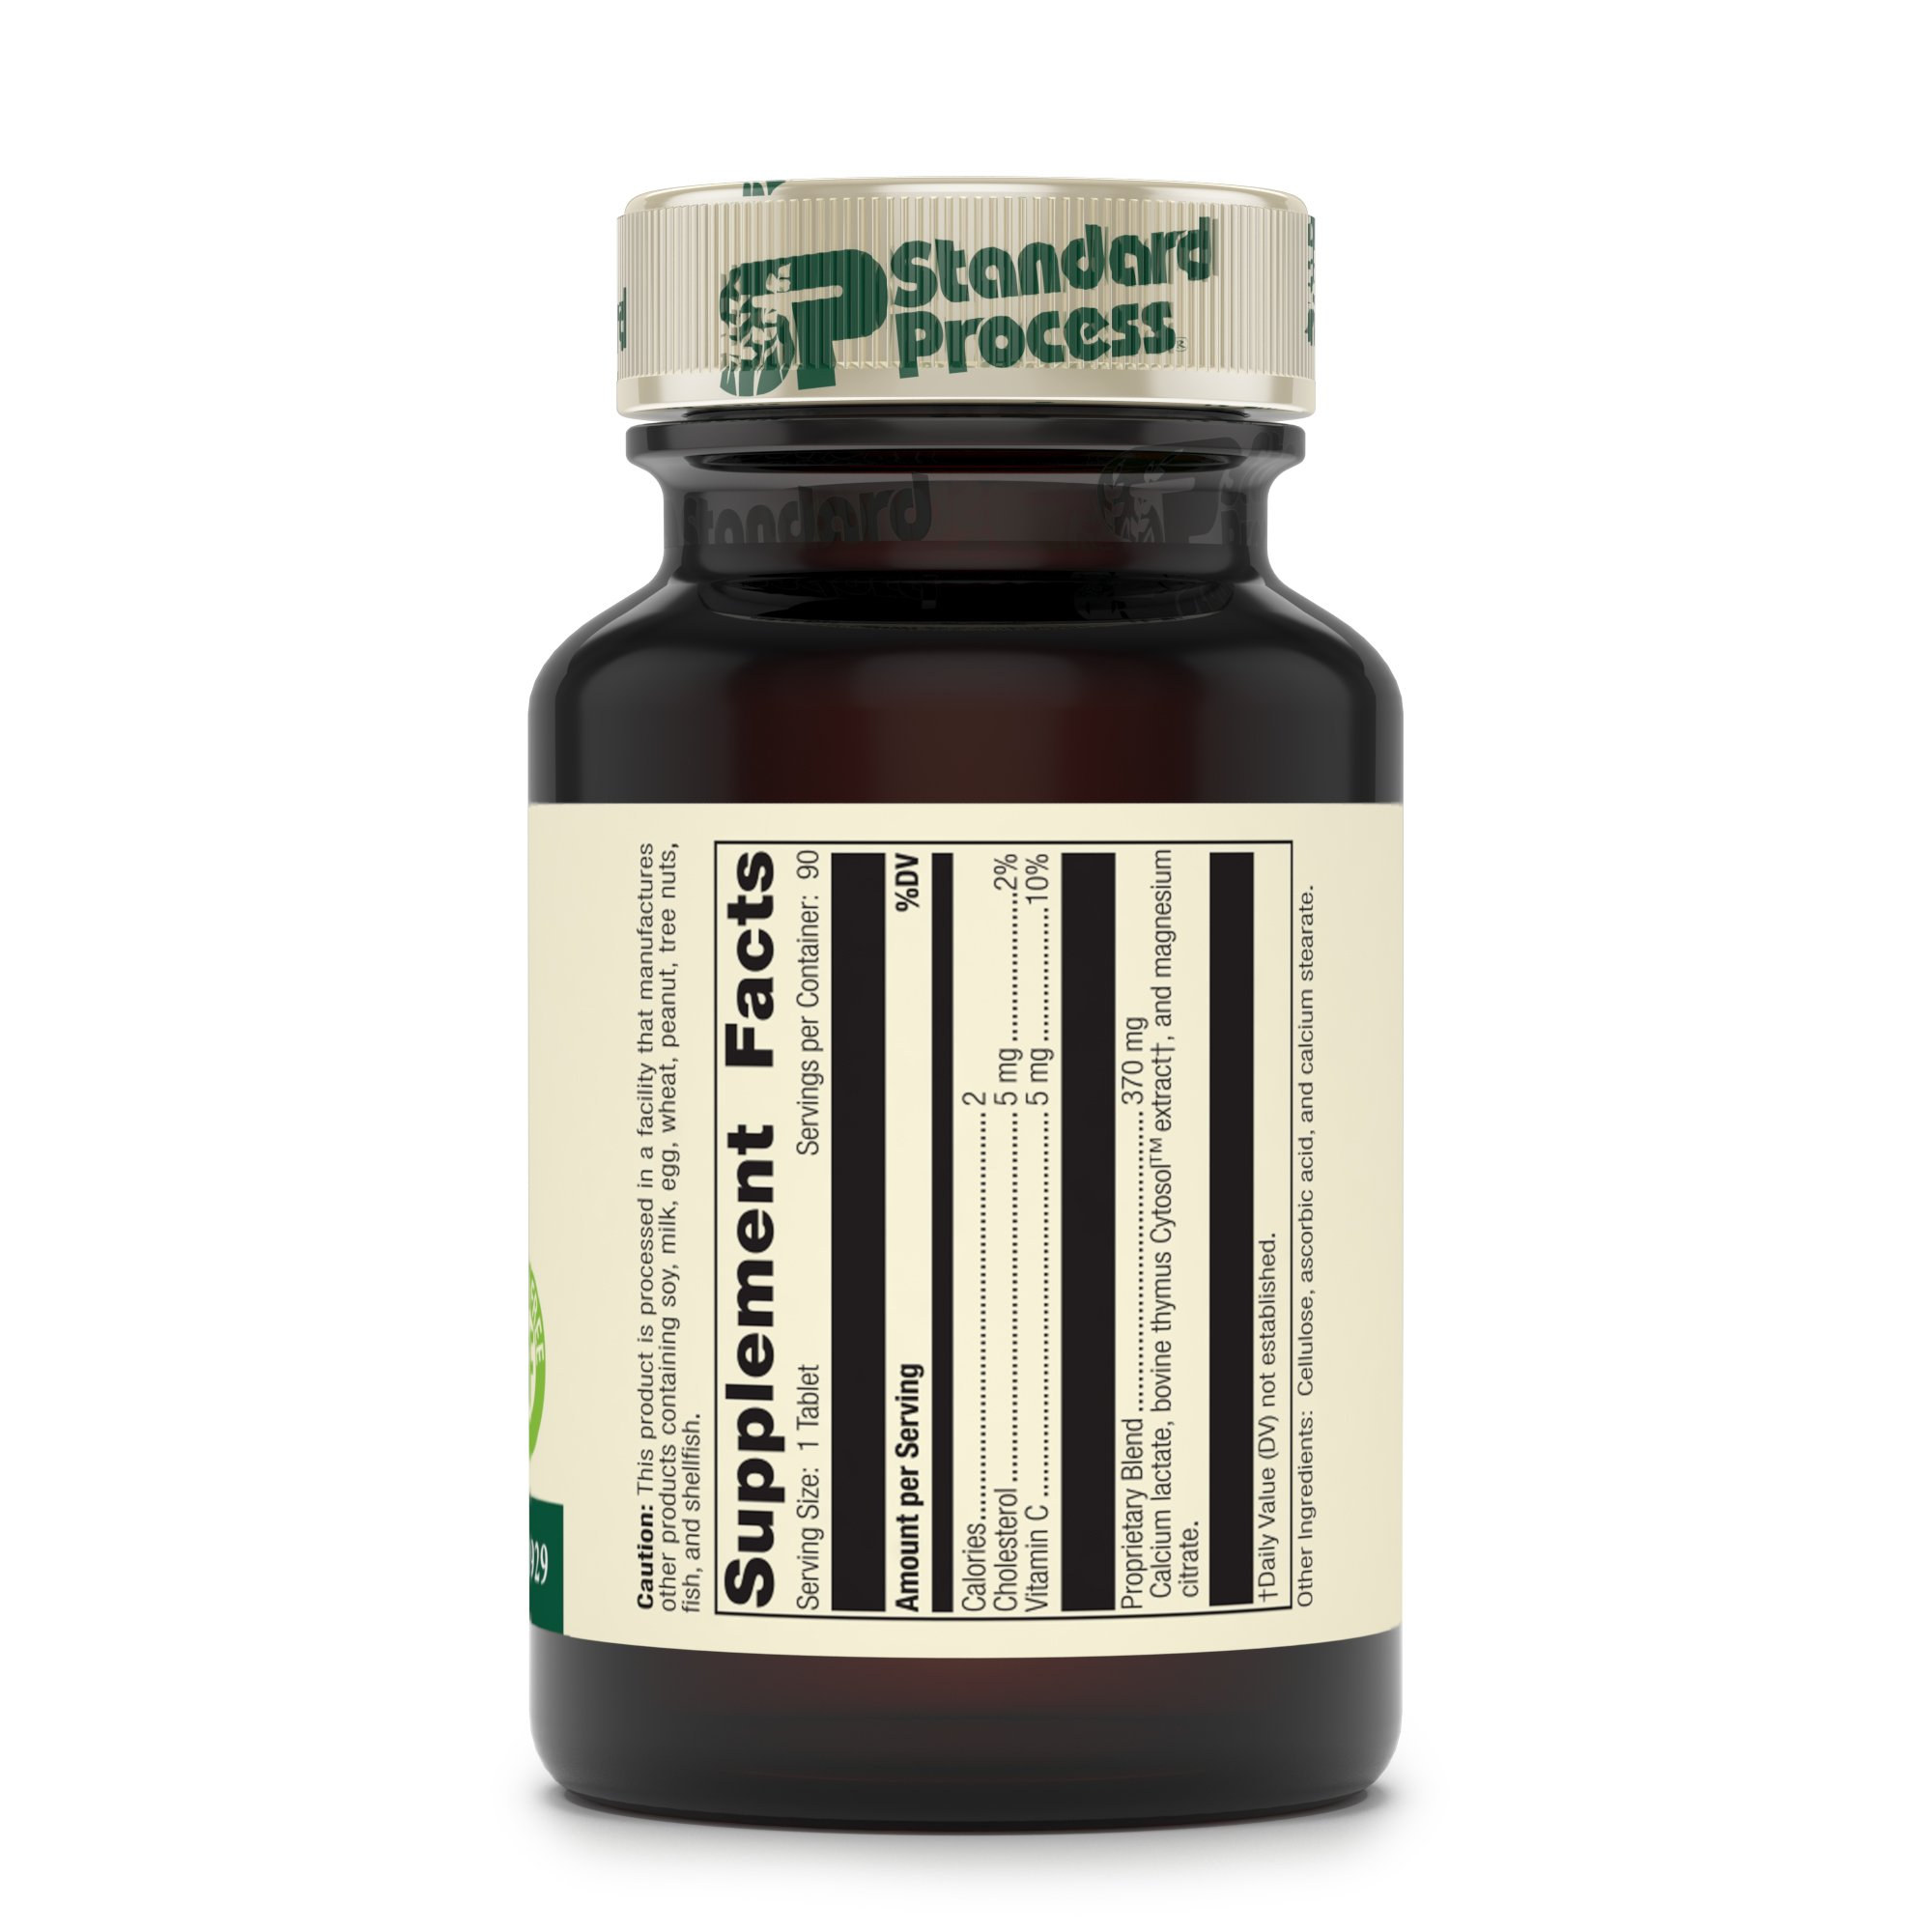 Standard Process - Thymex - Thymus Gland Support Supplement, Supports Immune System Health, Provides Antioxidant Vitamin C, Gluten Free - 90 Tablets by Standard Process (Image #3)